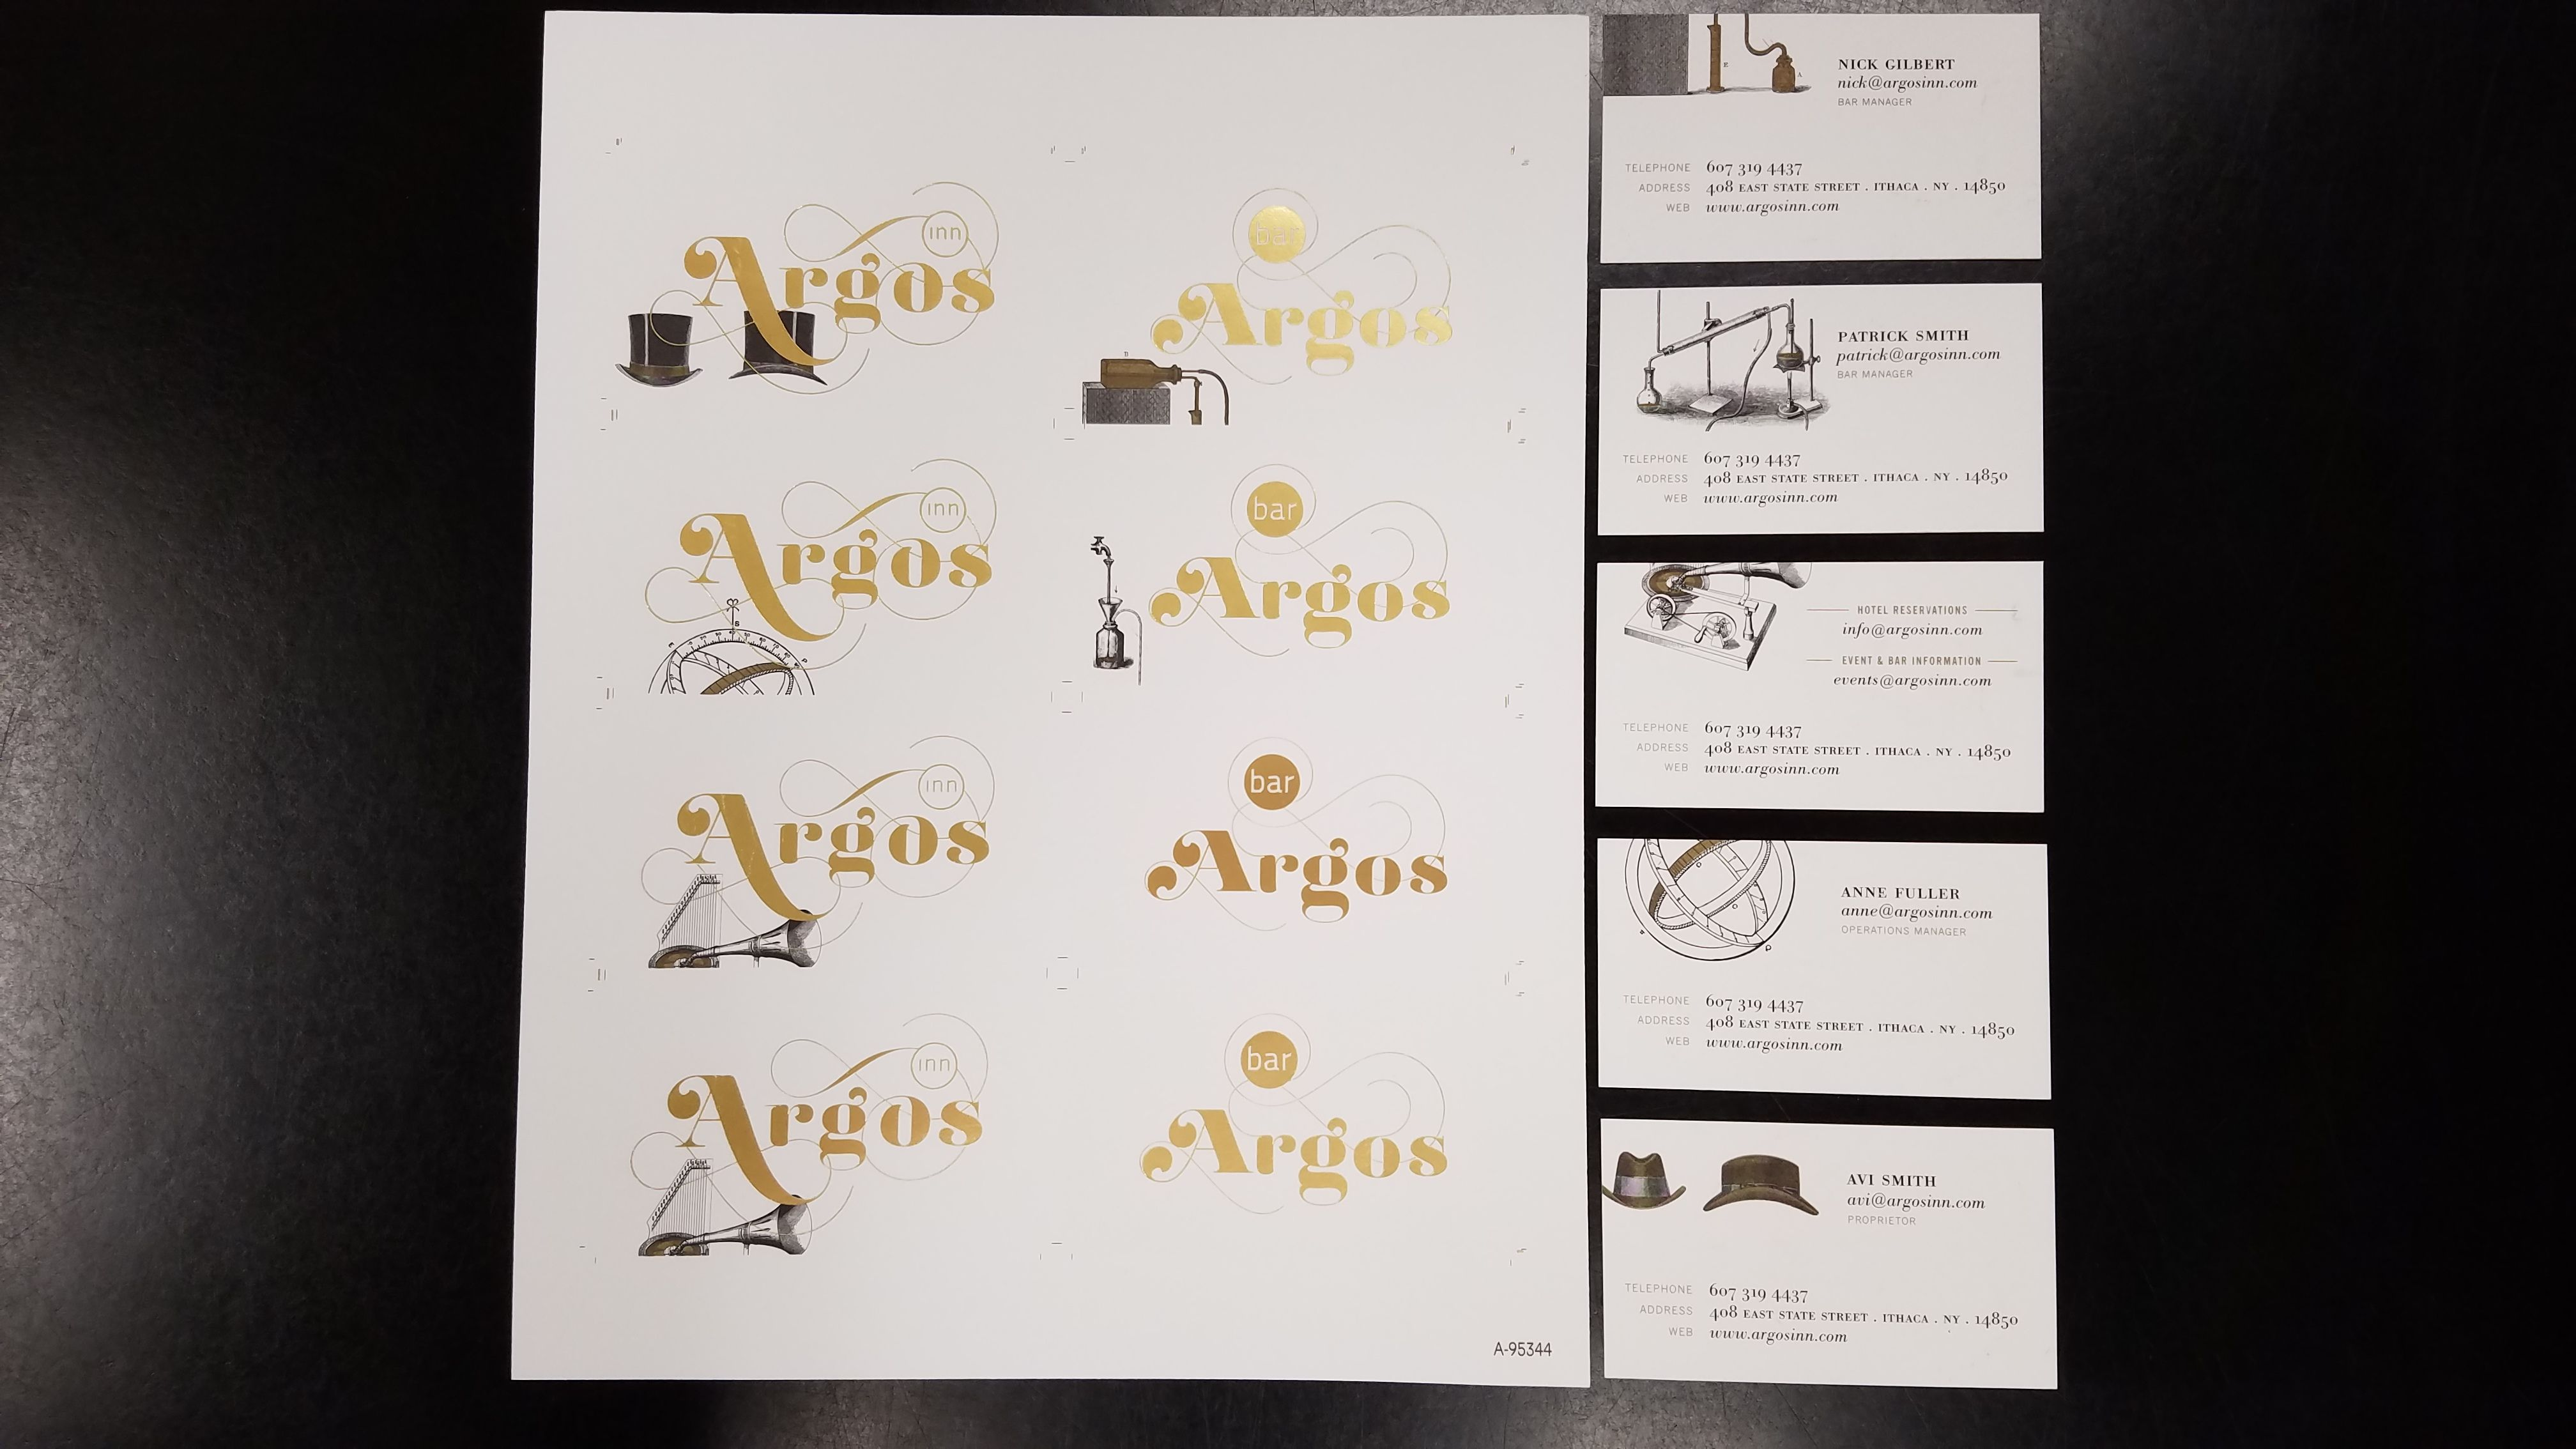 We Recently Printed And Foil Stamped Business Cards For Argos Inn They Came Out Great Foil Stamped Business Cards Stamped Business Cards Foil Stamping